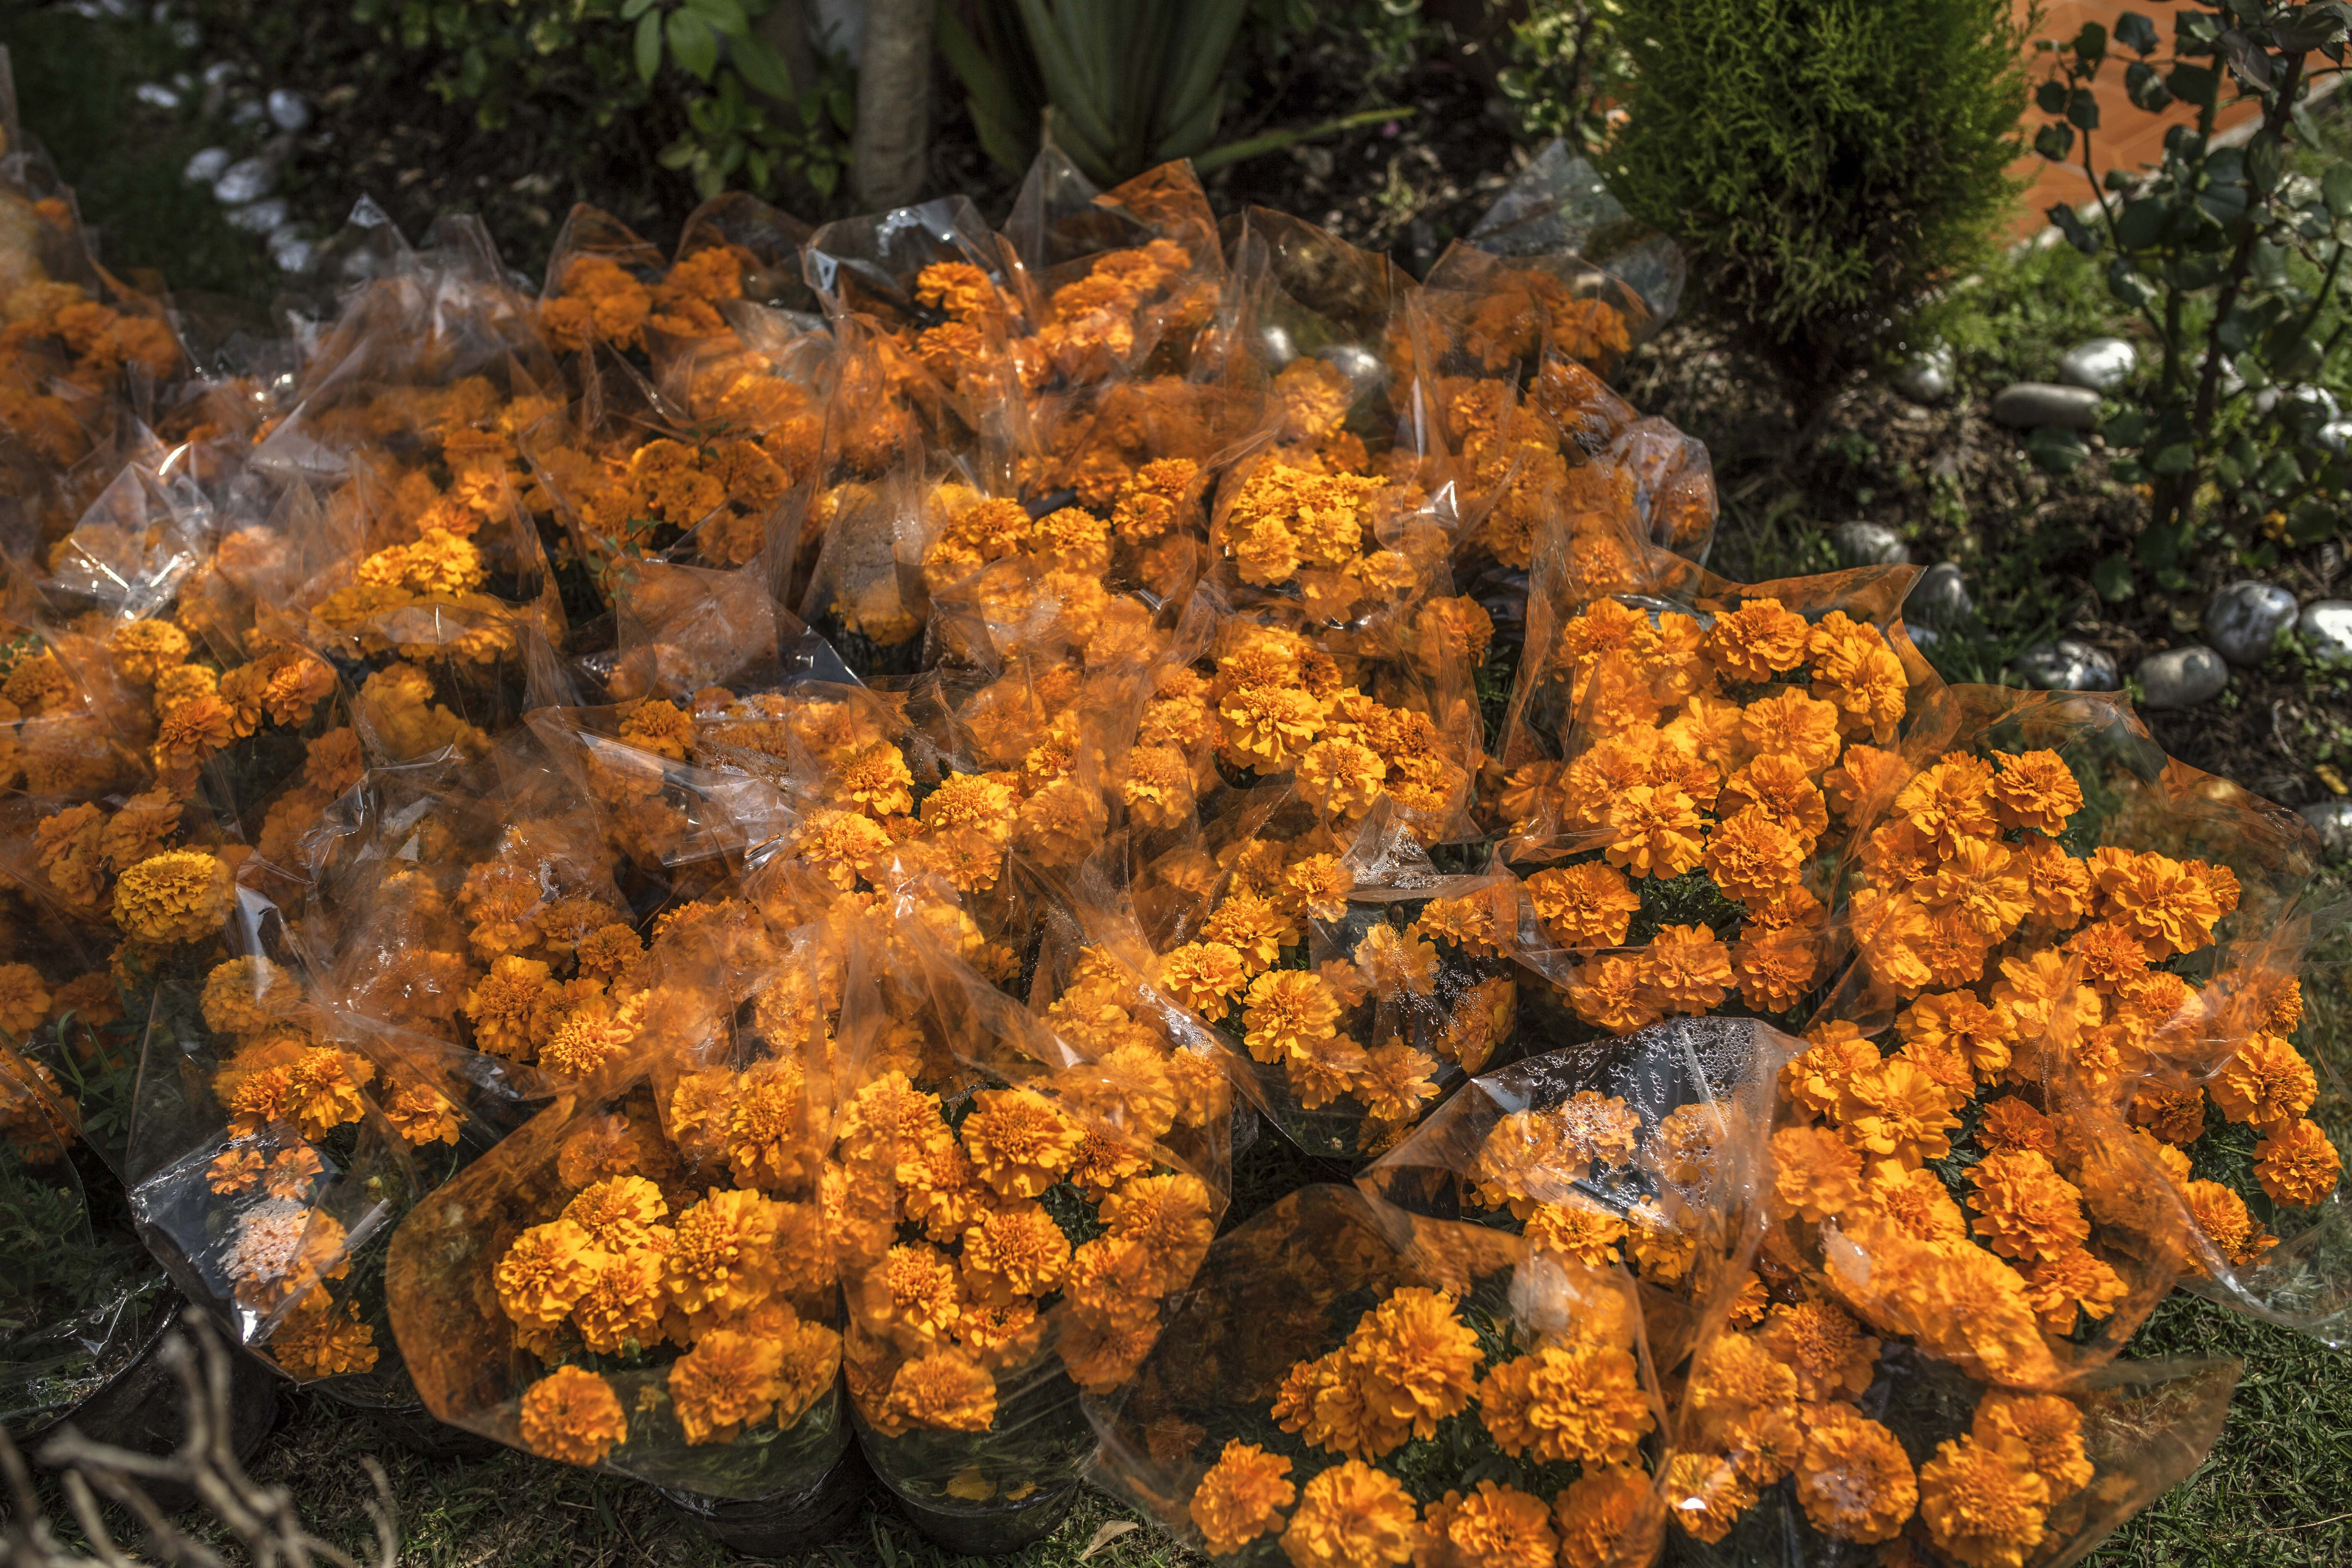 How Marigolds Became the Iconic Flower Used to Celebrate Dia de Muertos